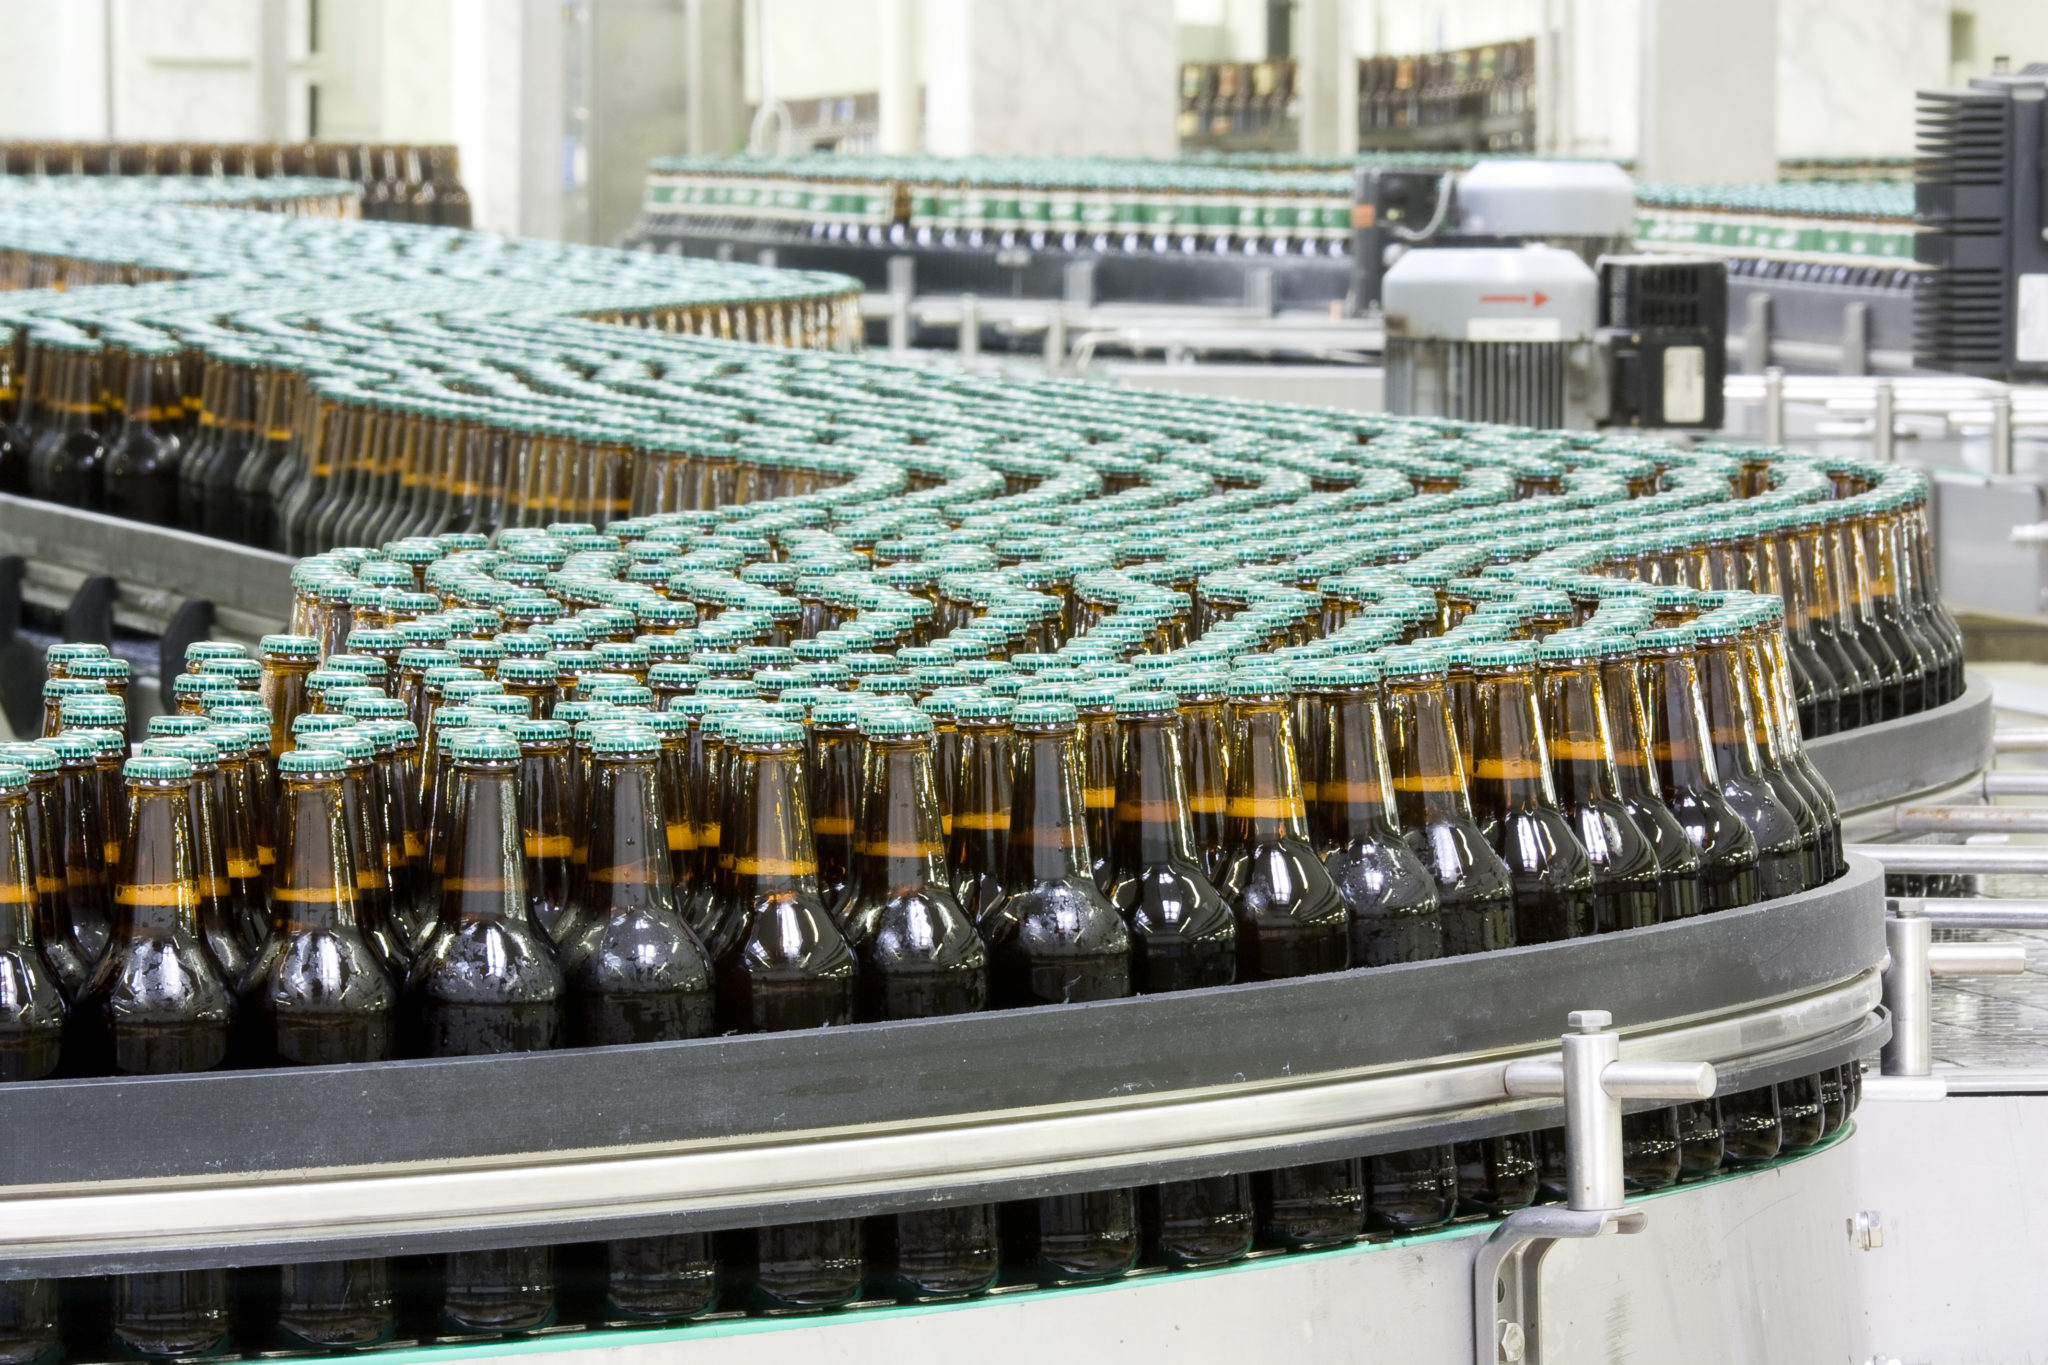 Kaman Automation iStock 000014051172 Full Bottles of beer on conveyor in brewery scaled